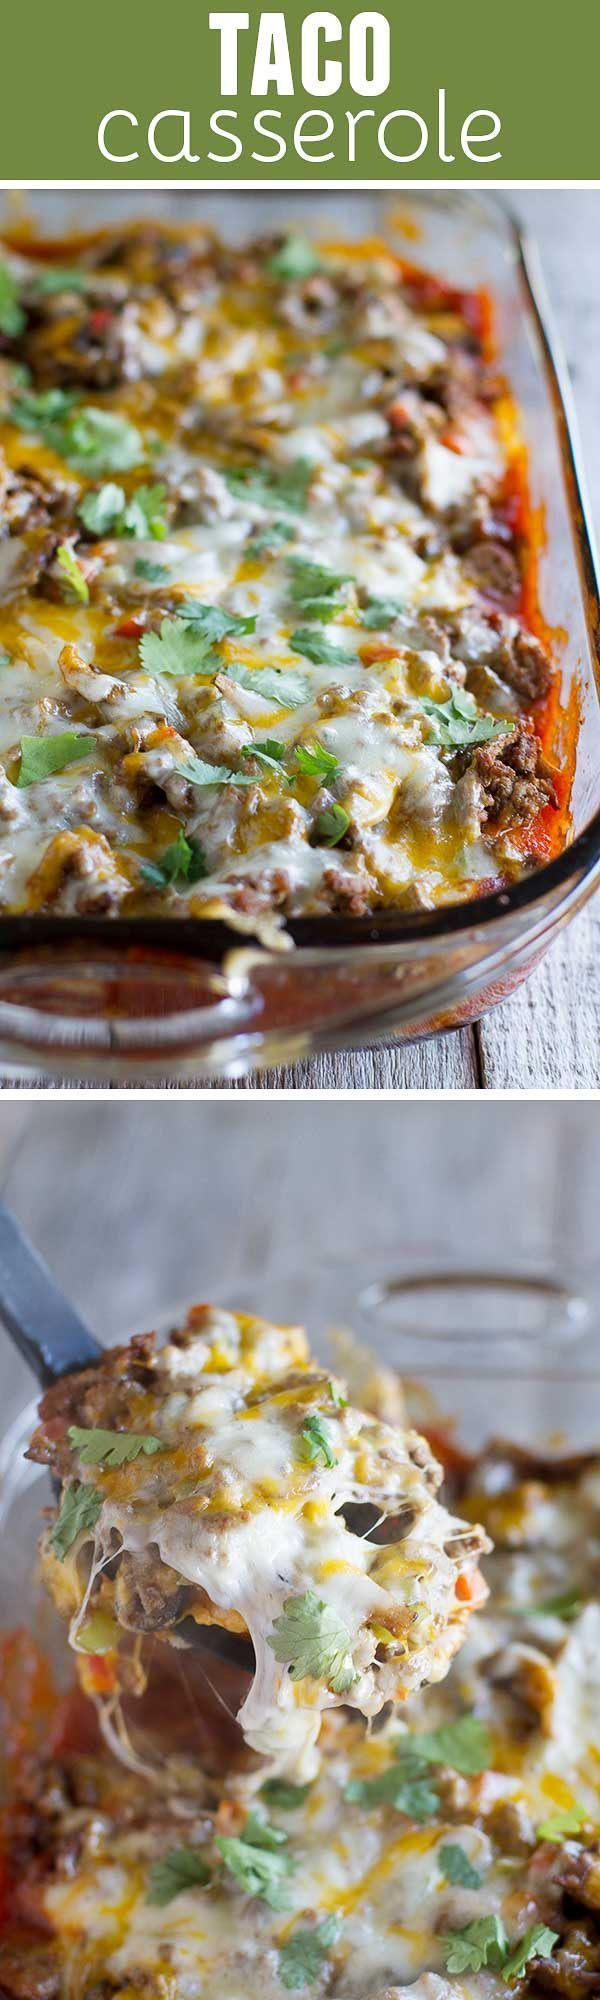 Biscuits are coated in taco sauce then topped with spiced ground beef and lots of cheese in this family friendly Taco Casserole.: